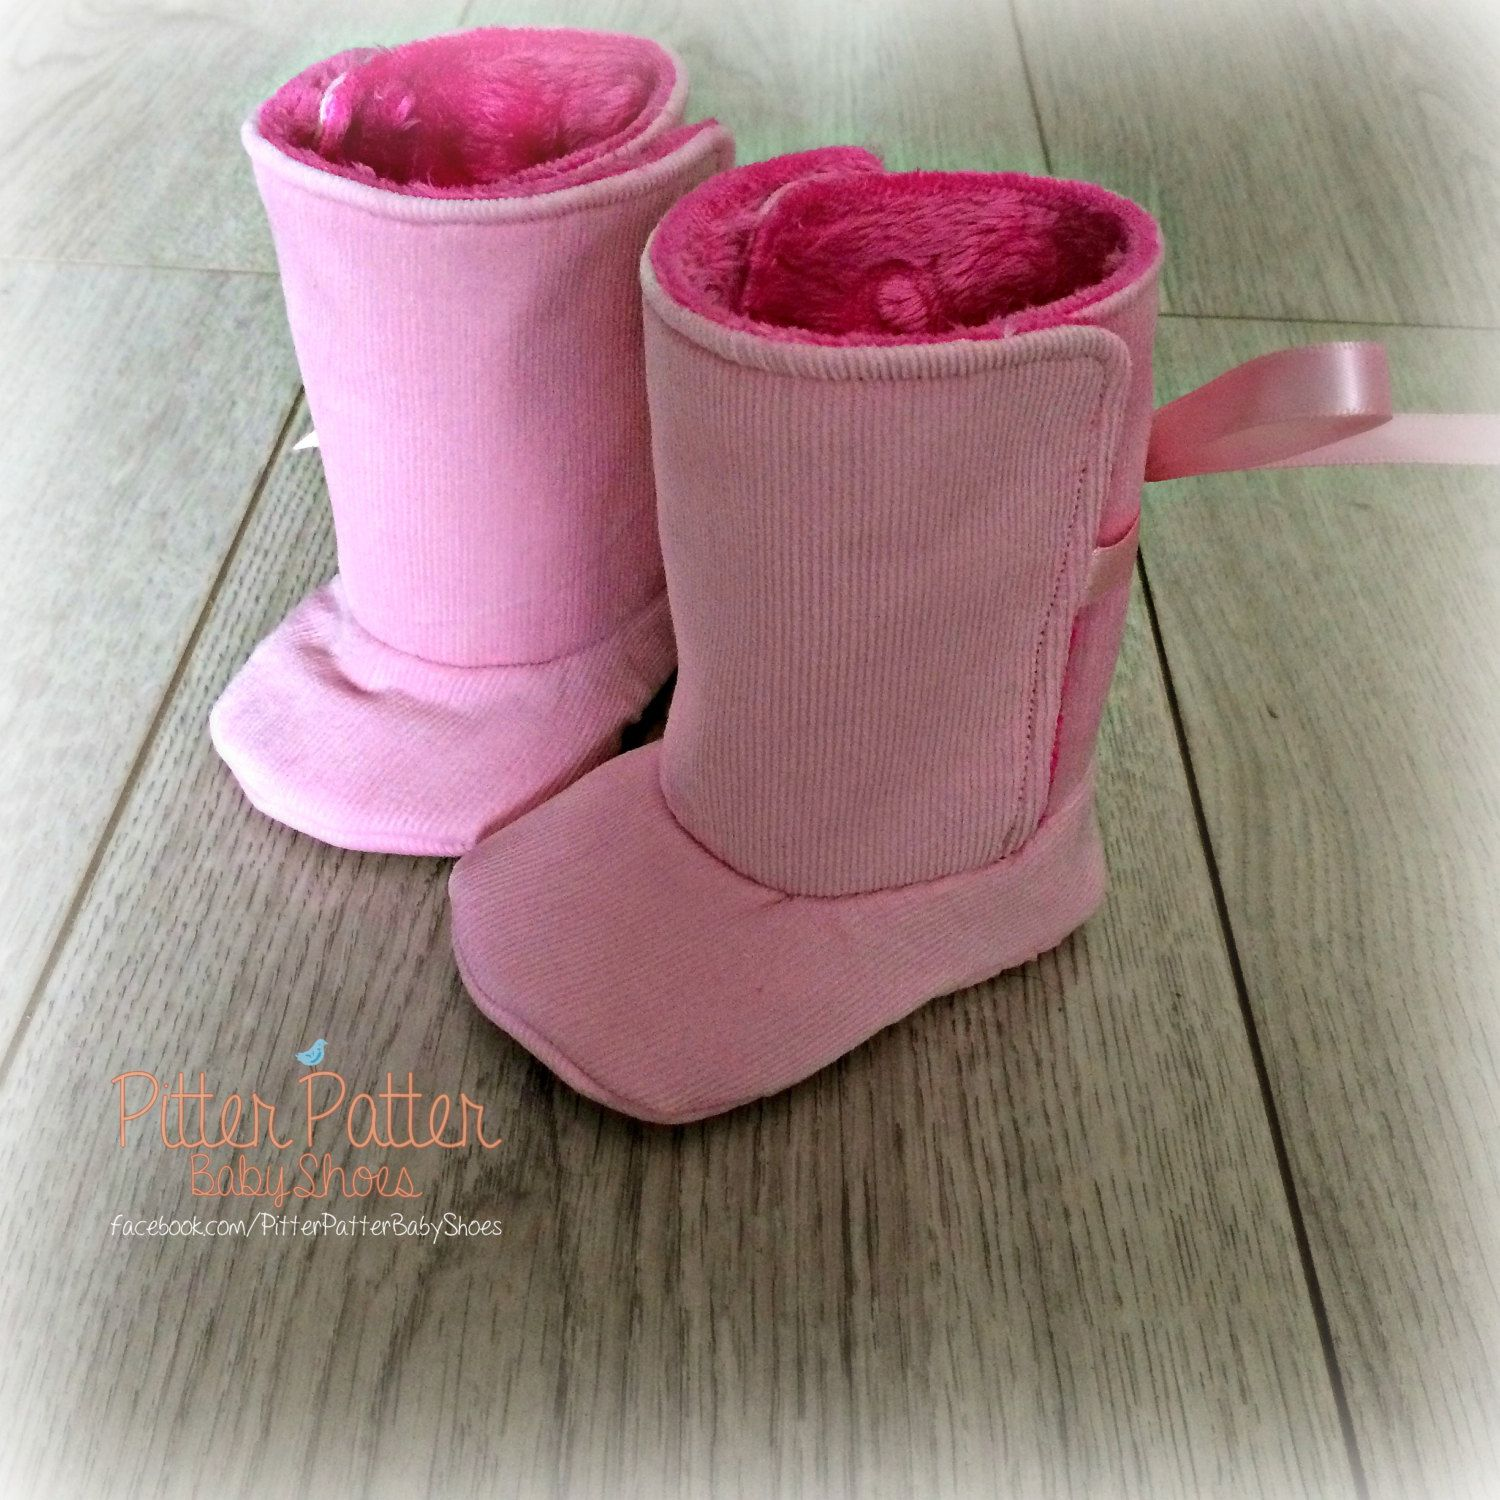 Corduroy and Cuddle Pink Baby Boots w FREE Paci Clip Go Pink Baby